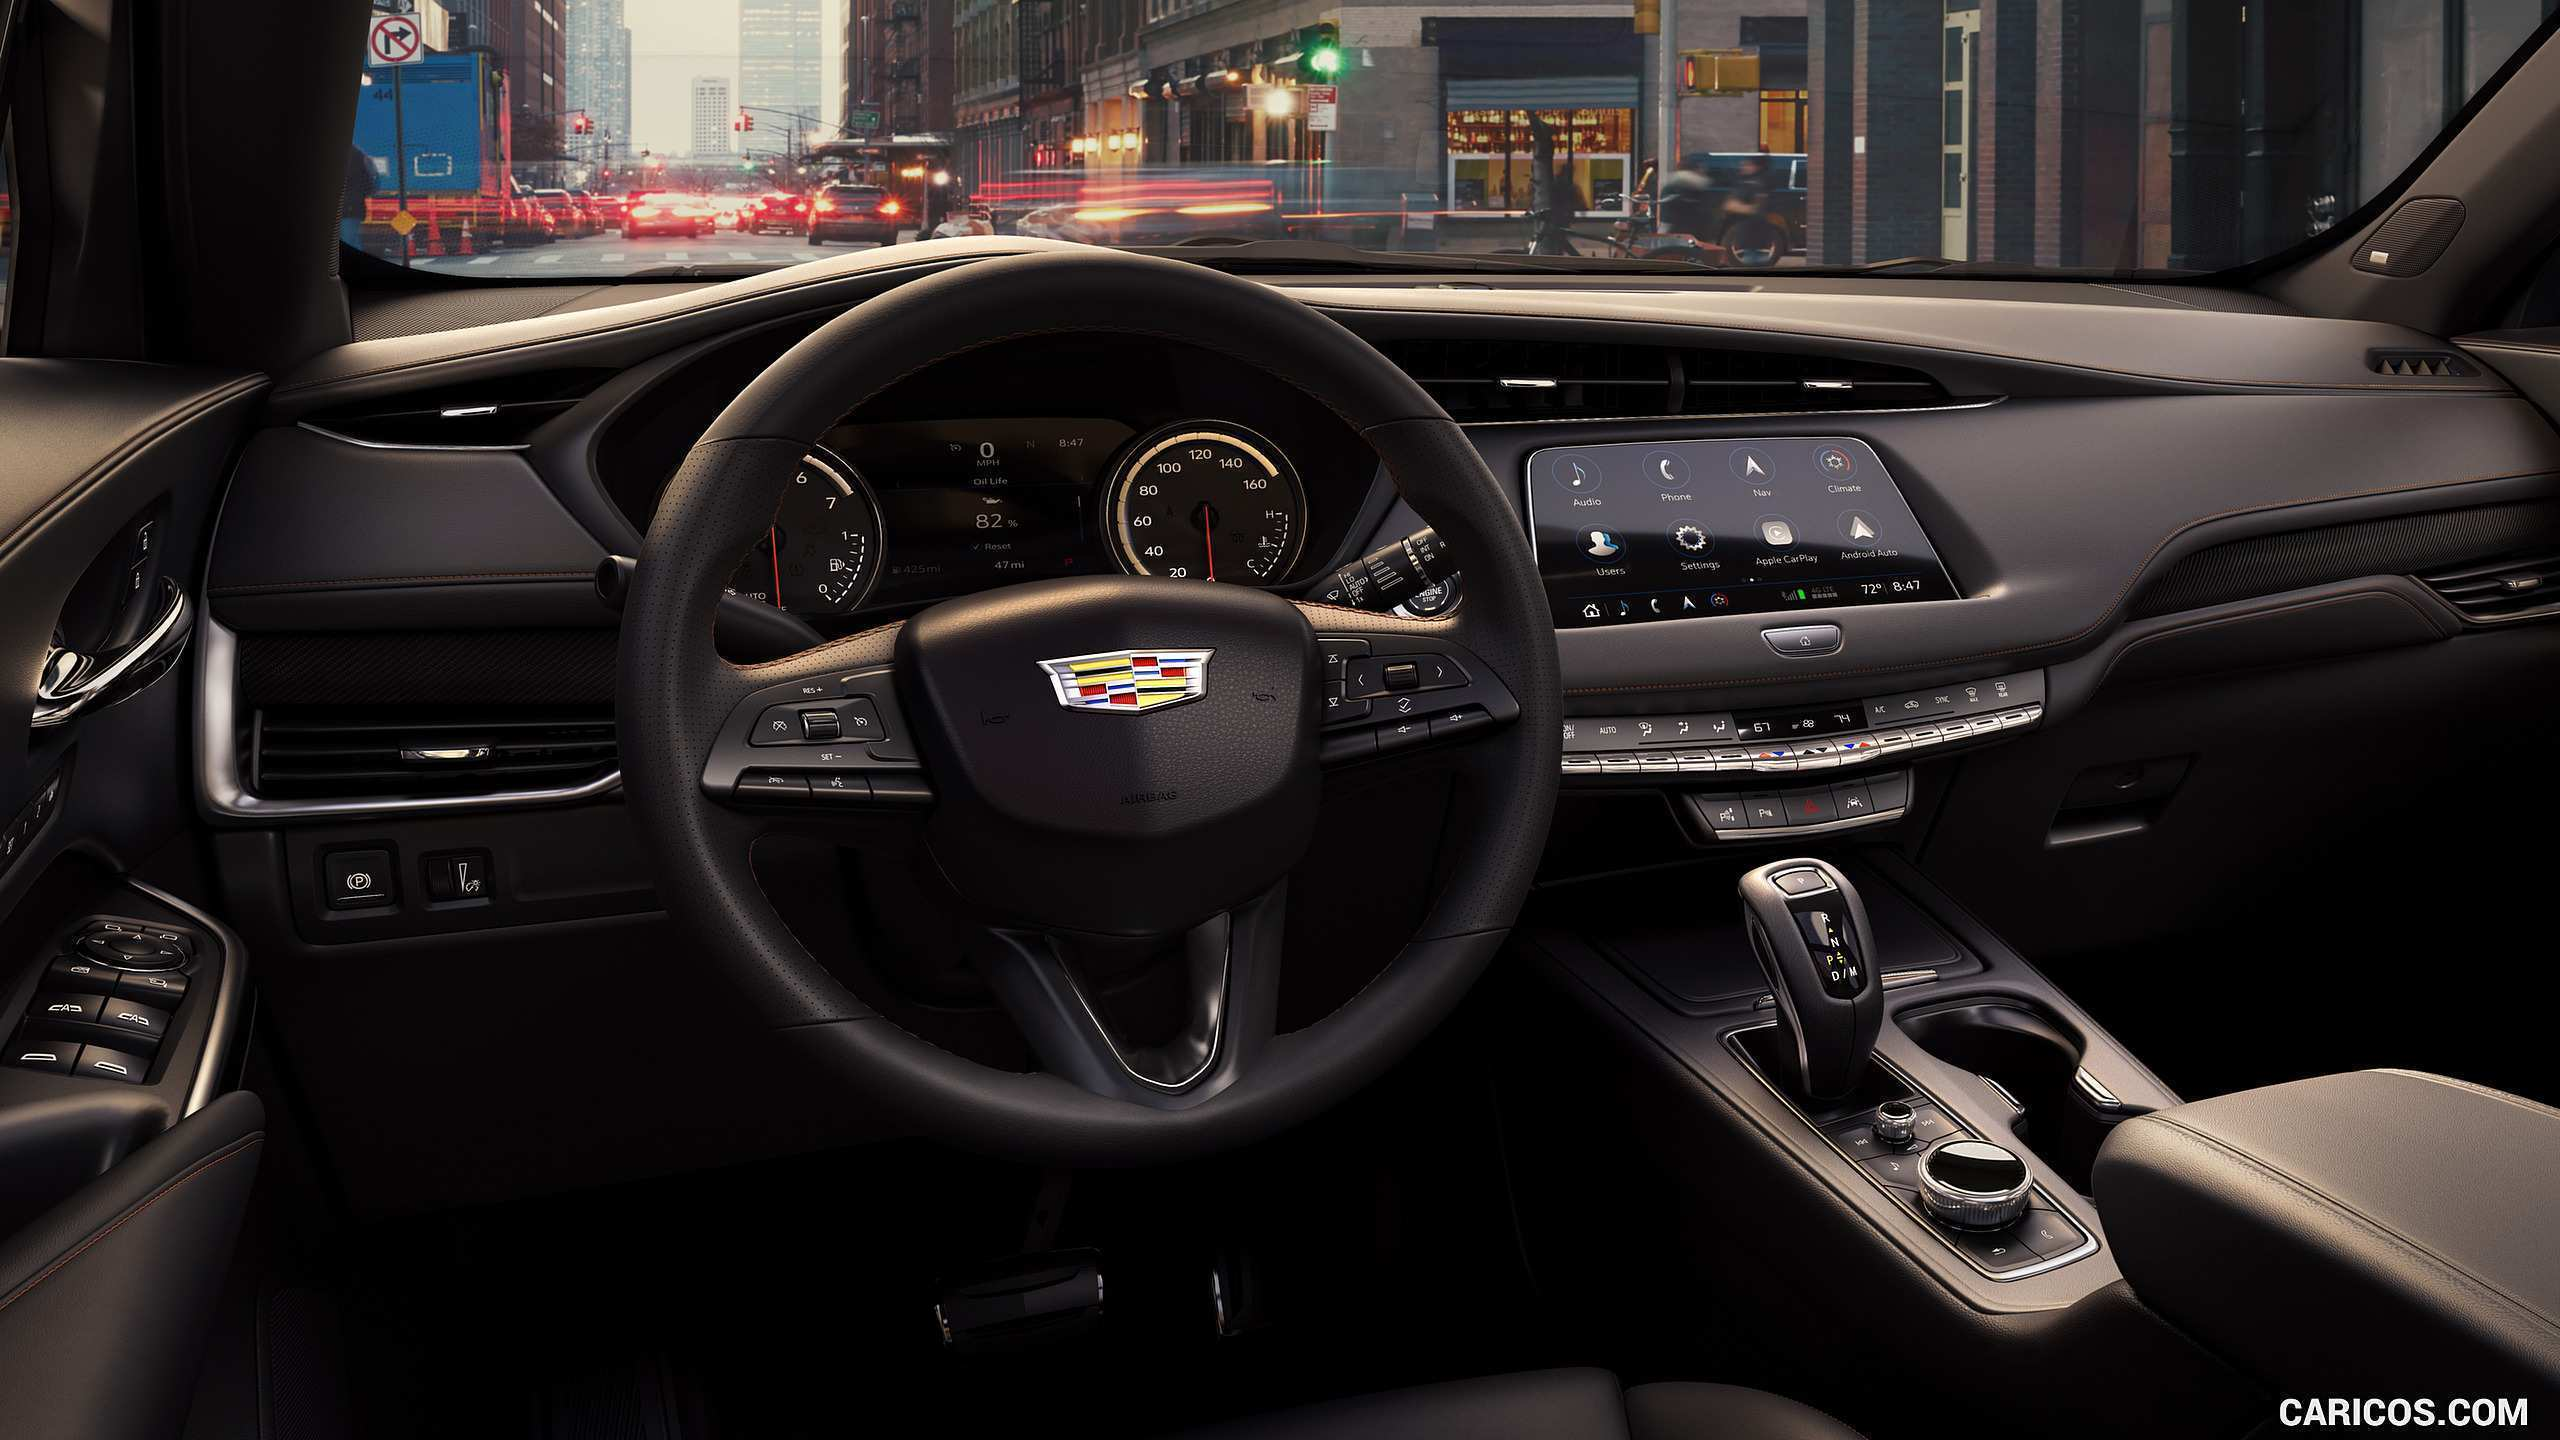 78 New 2019 Cadillac Interior Spesification by 2019 Cadillac Interior